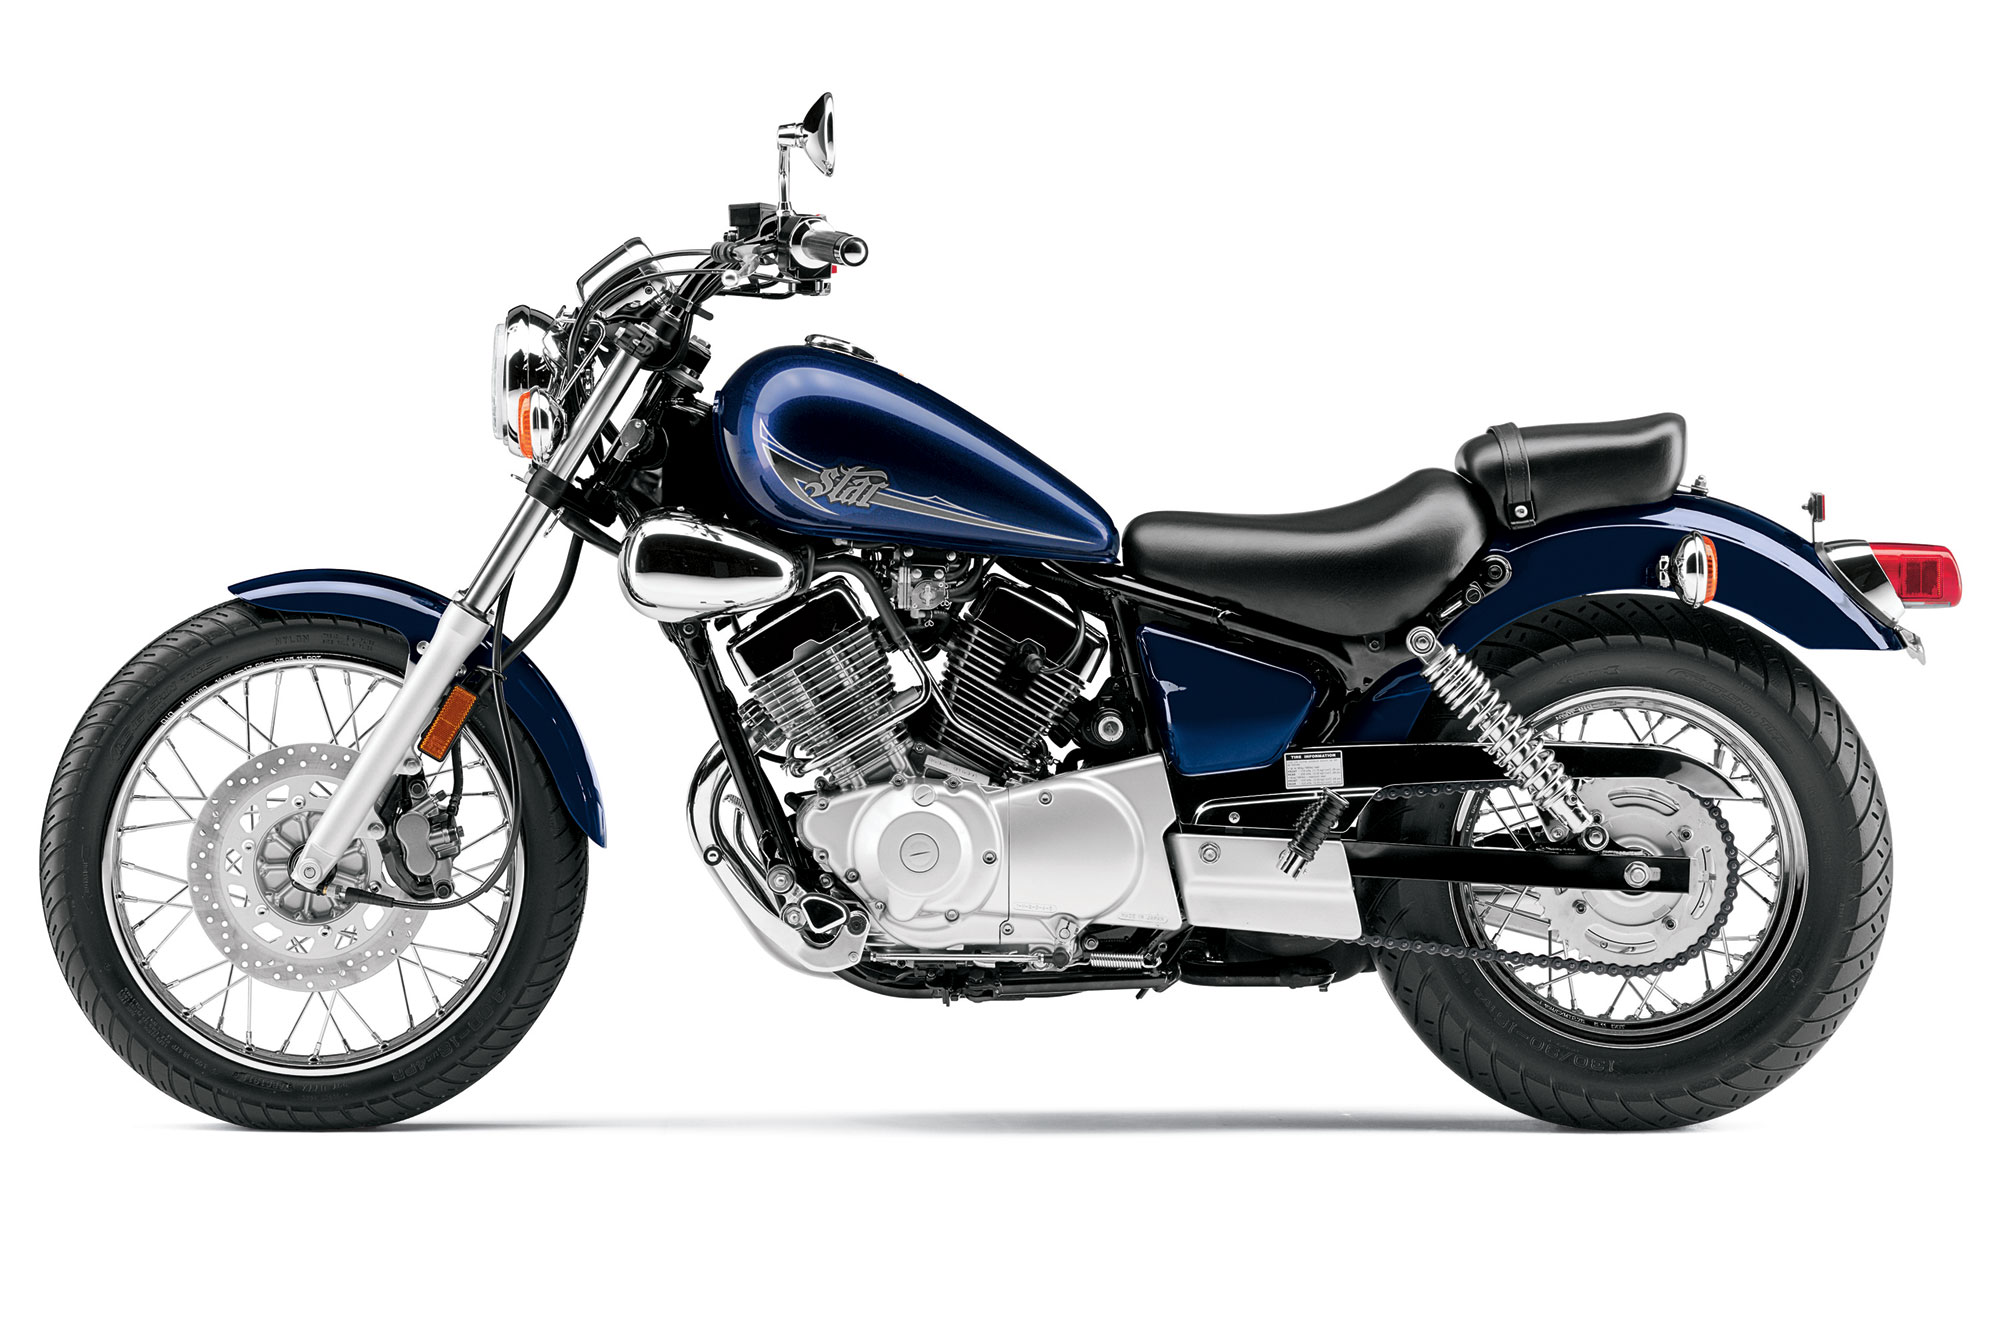 2013 Yamaha V-Star 250 | Top Speed. »